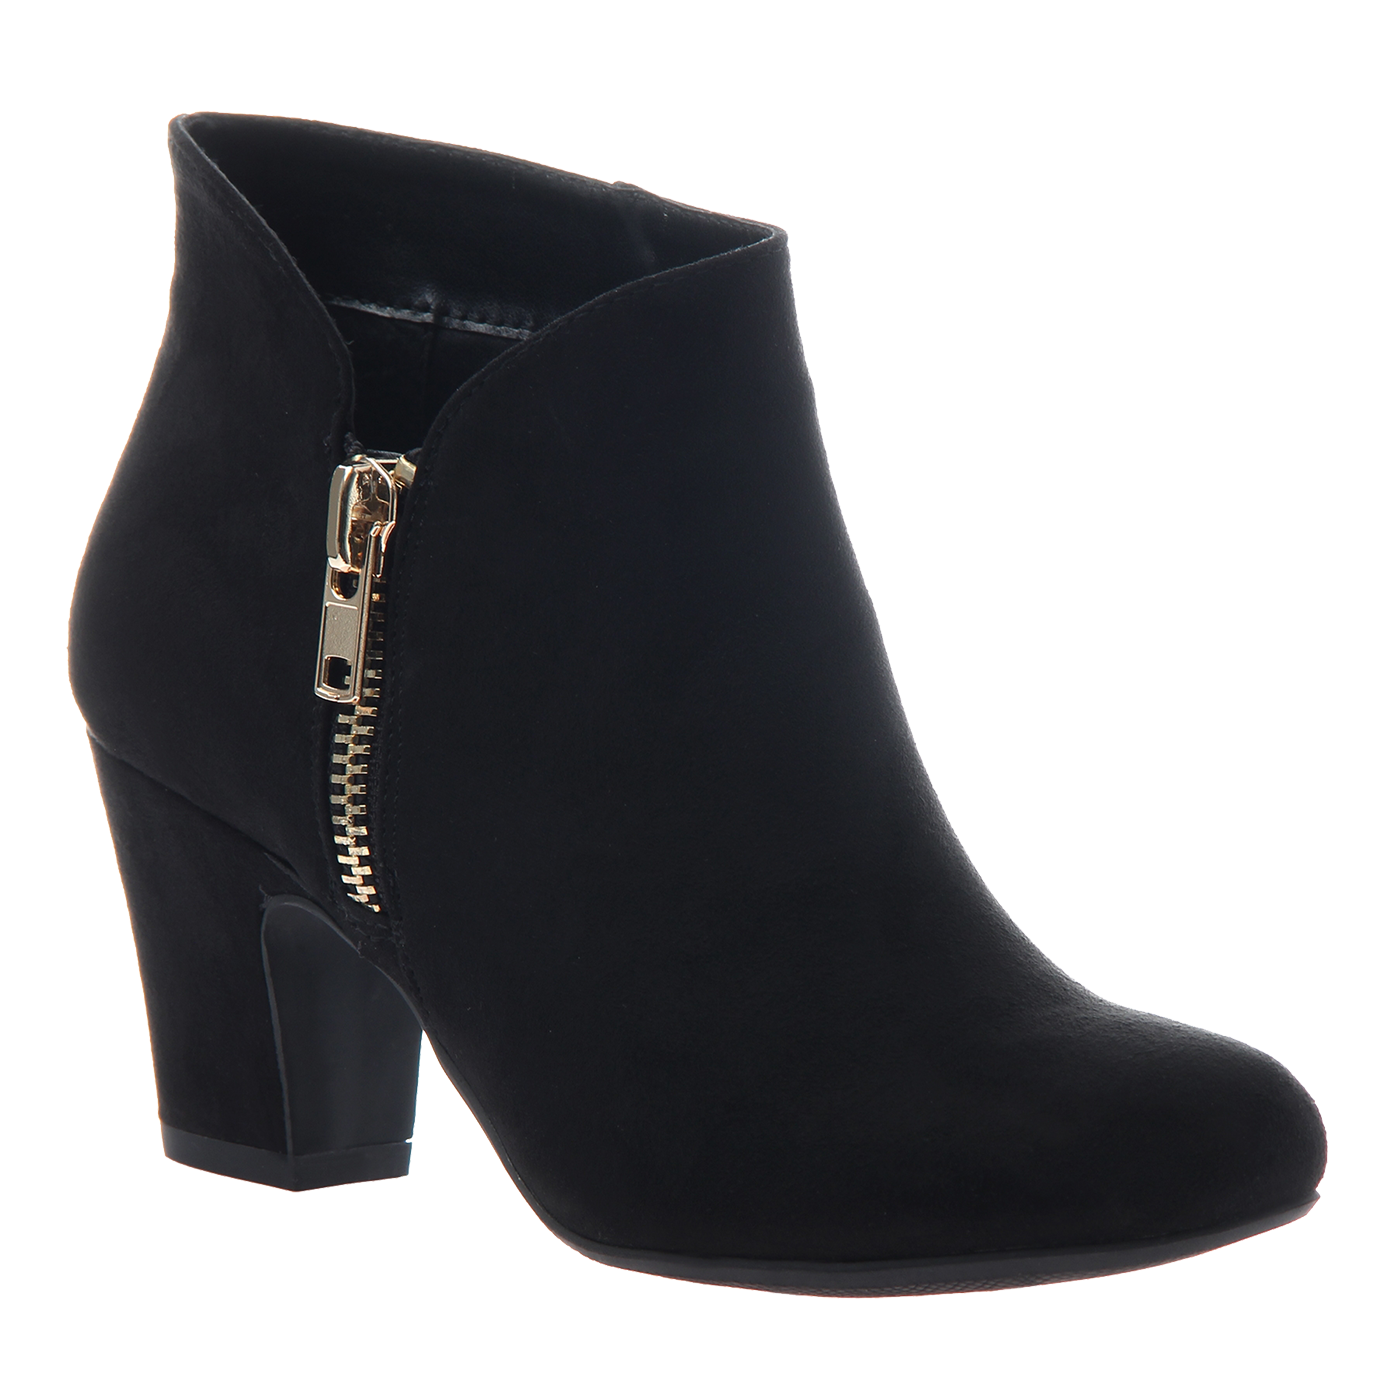 Gold boots png. Plump in black fabric